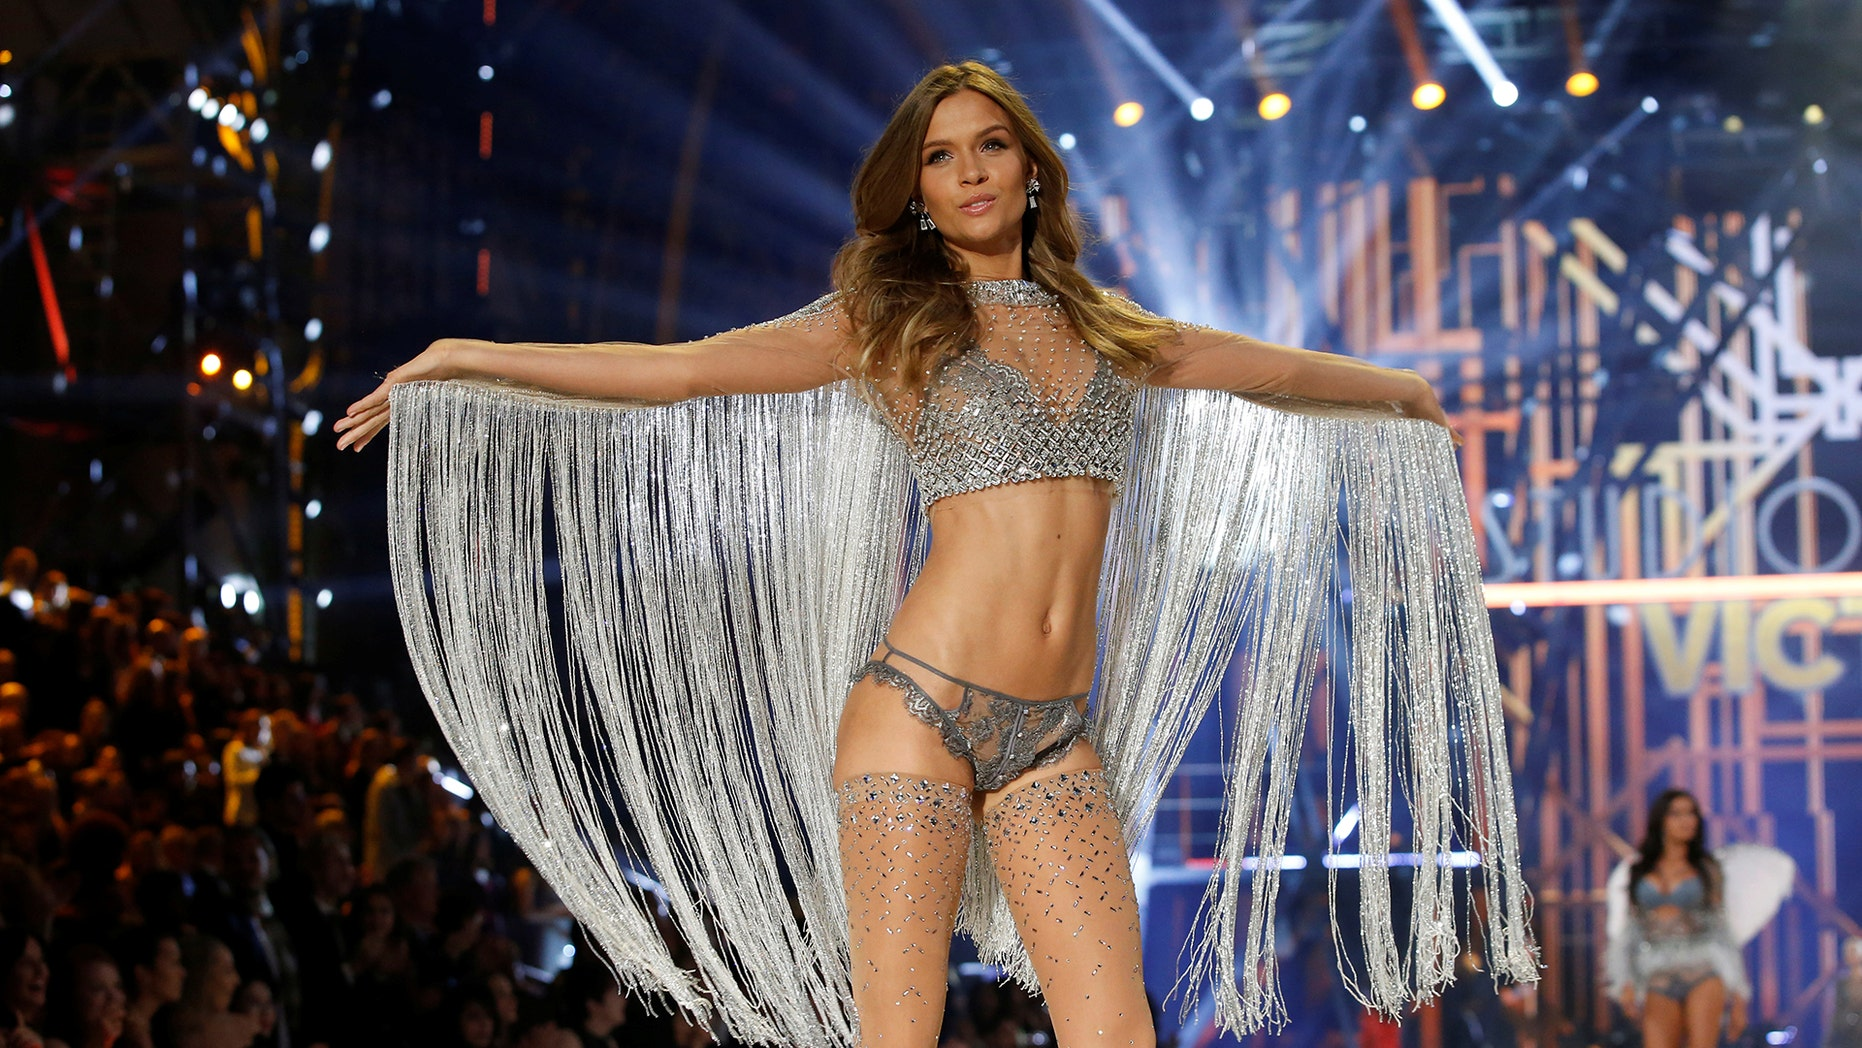 Model Josephine Skriver presents a creation during the 2016 Victoria's Secret Fashion Show at the Grand Palais in Paris, France, November 30, 2016.